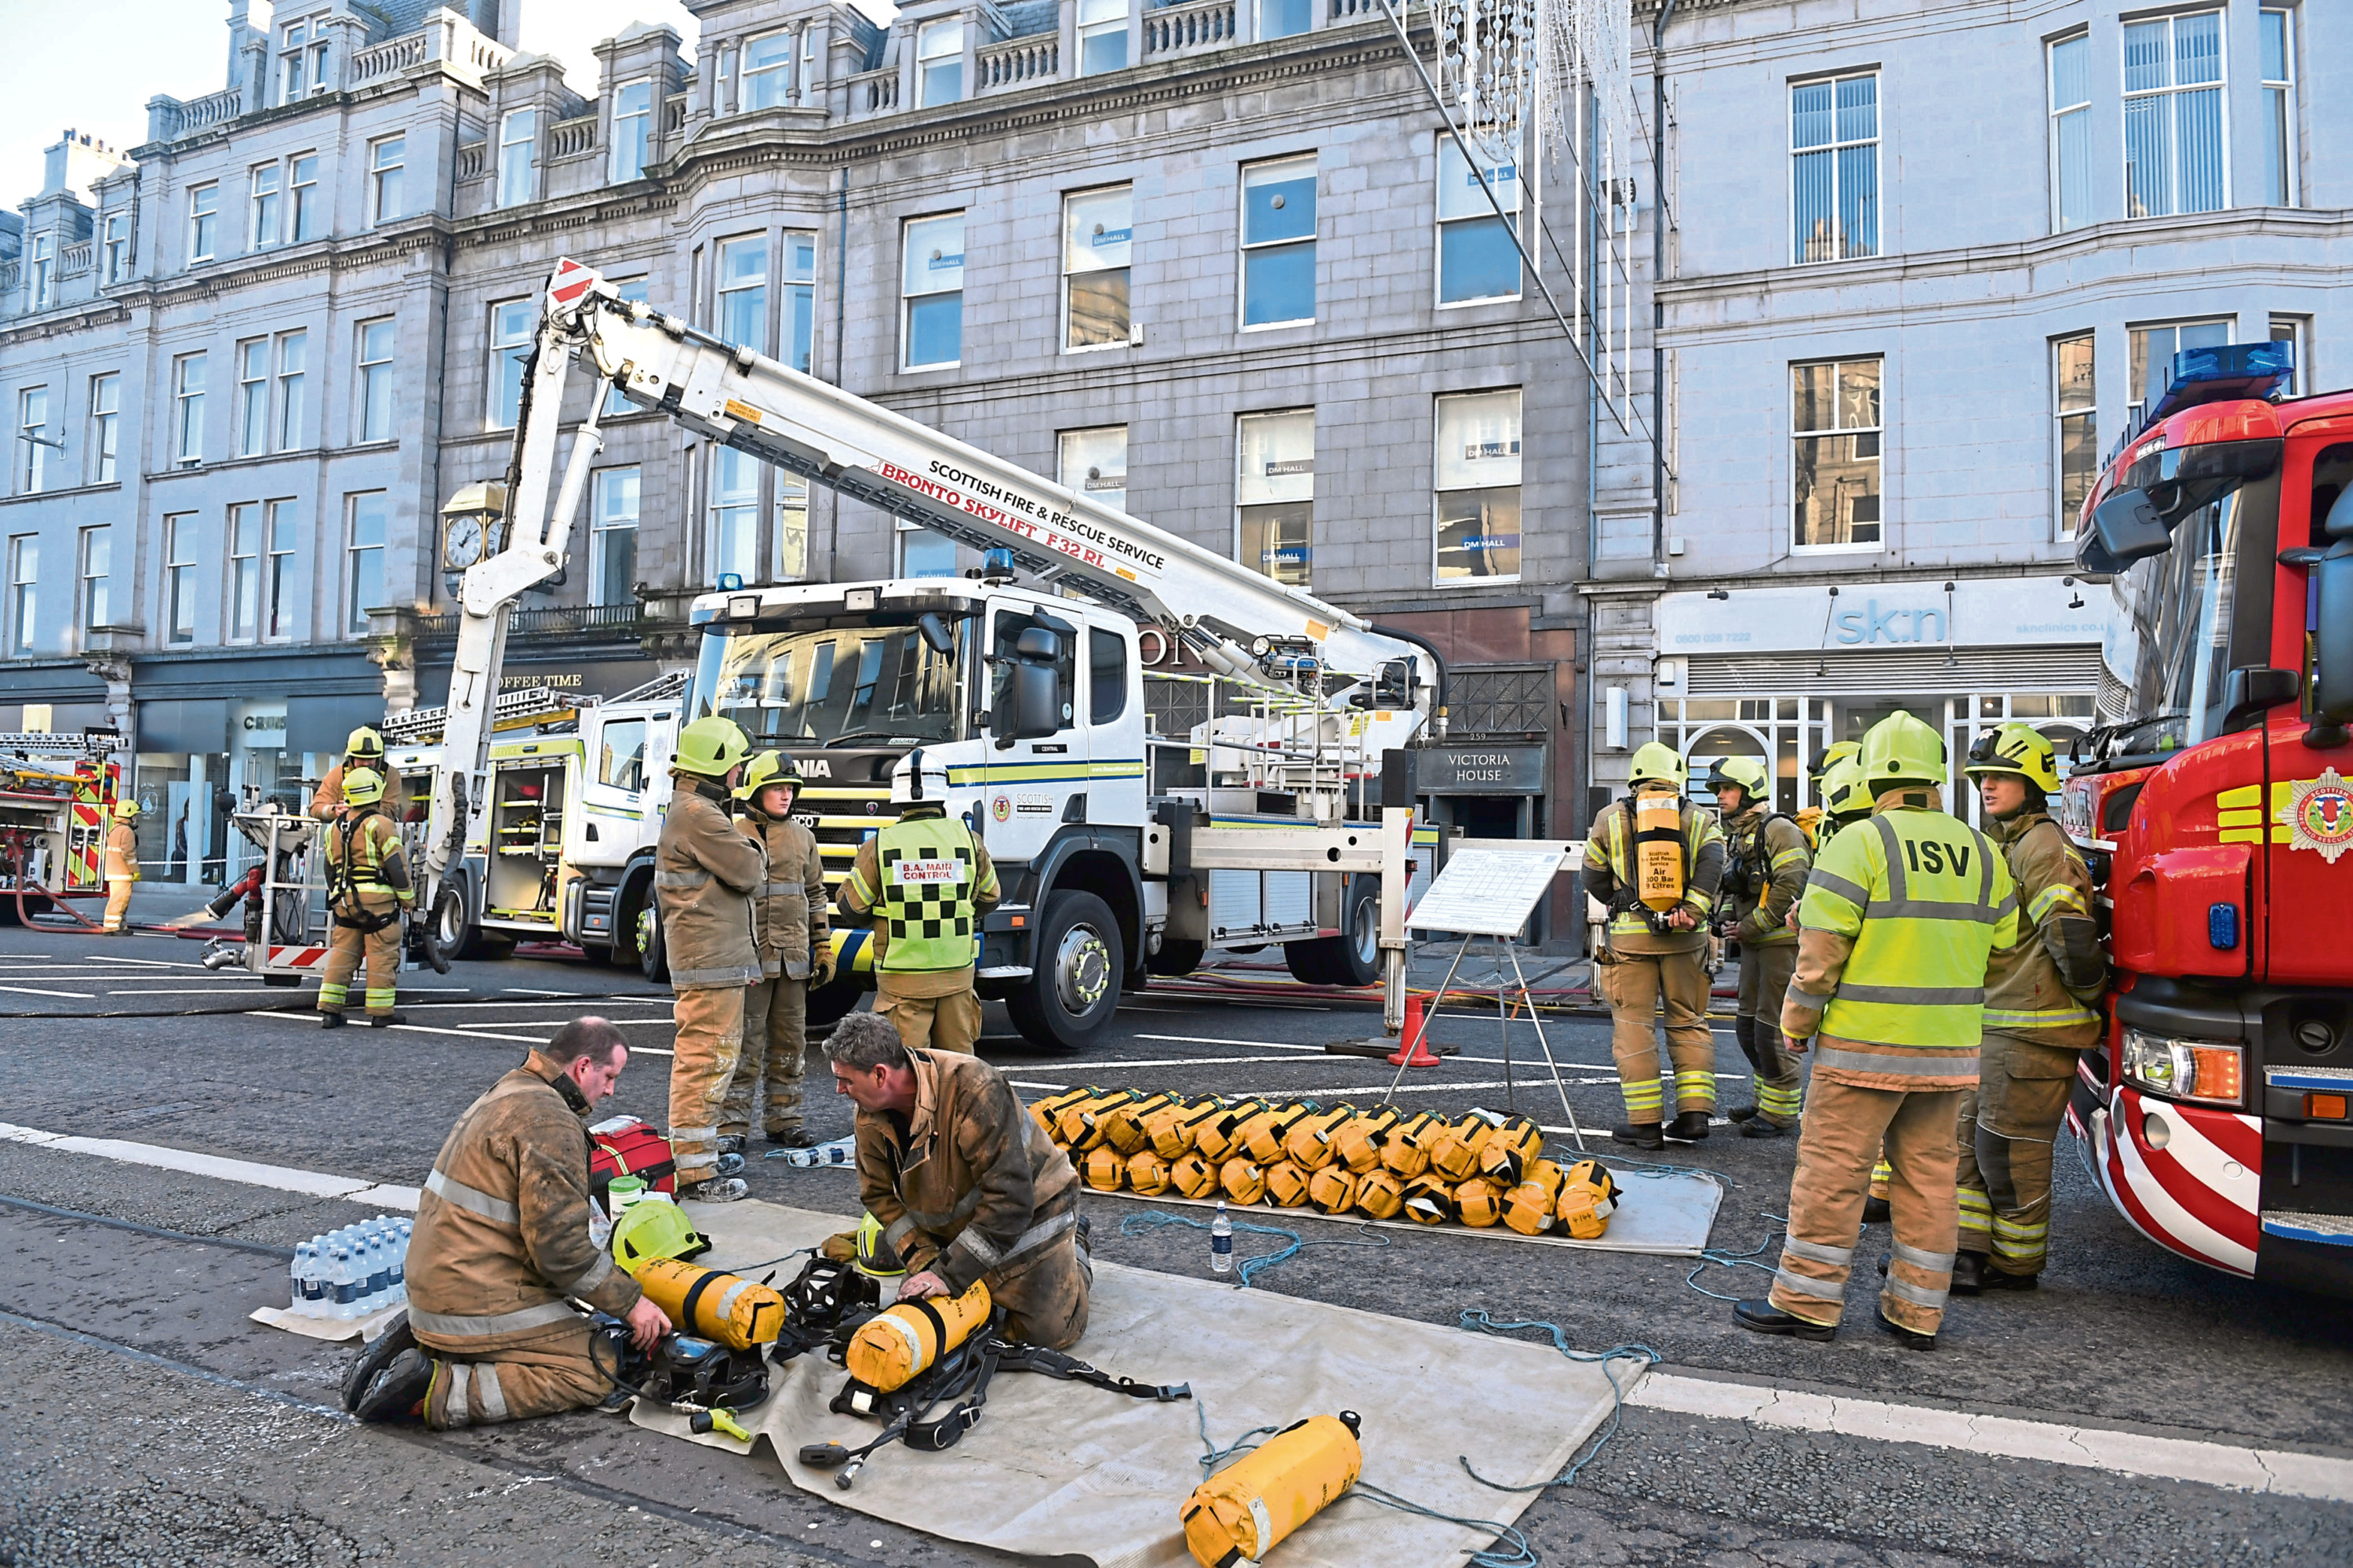 Fire at Amarone or next door, Union Street Aberdeen. Pic by Chris Sumner Date 10/11/18